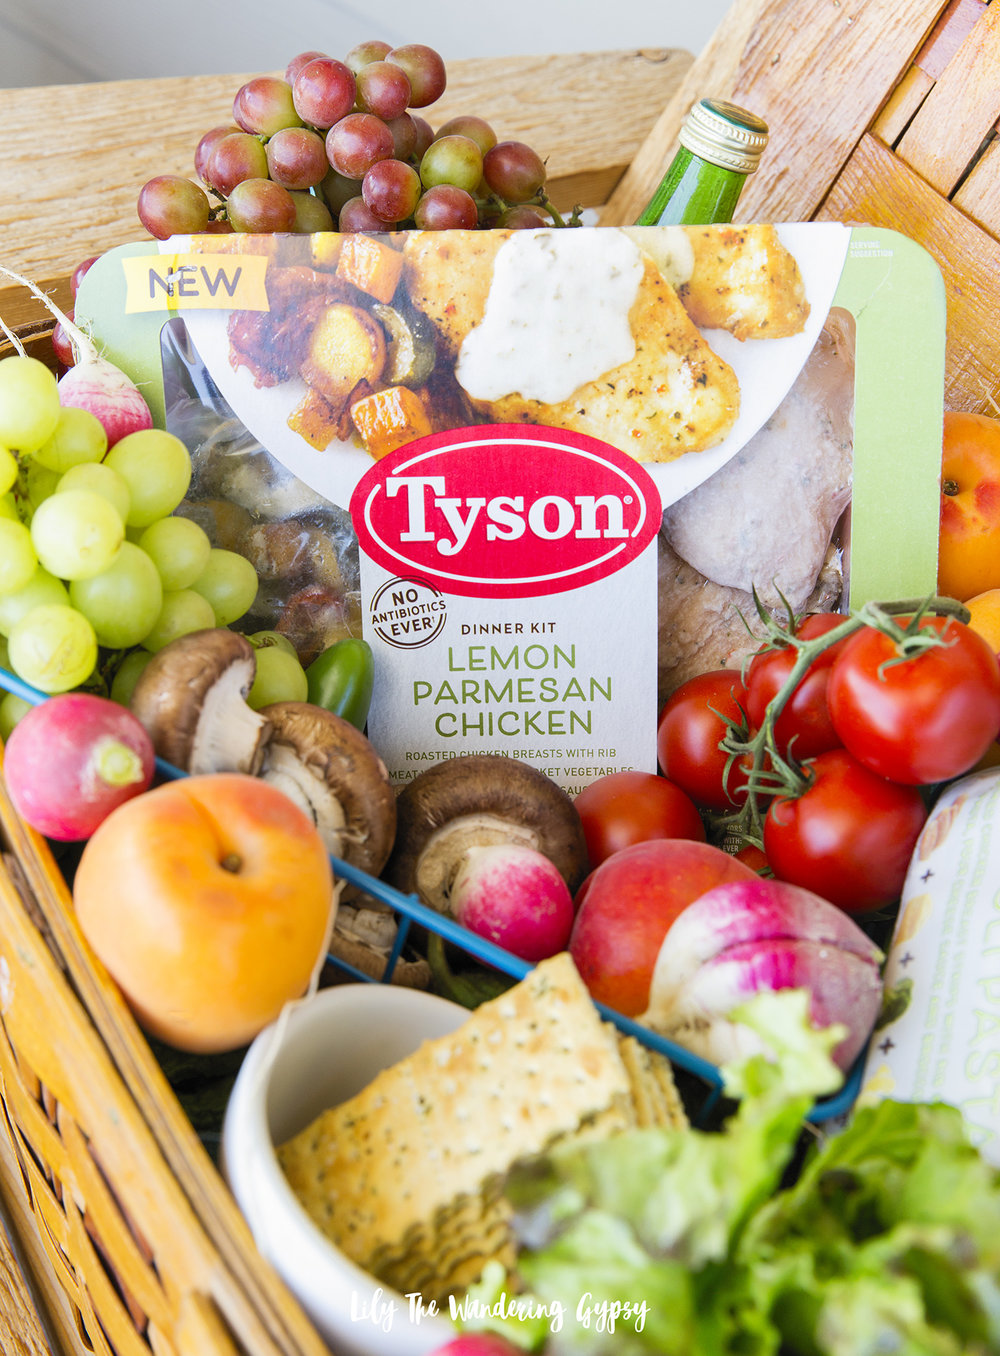 Elegant Yet Easy Dinner Ideas With New Tyson Dinner Kits Lily The